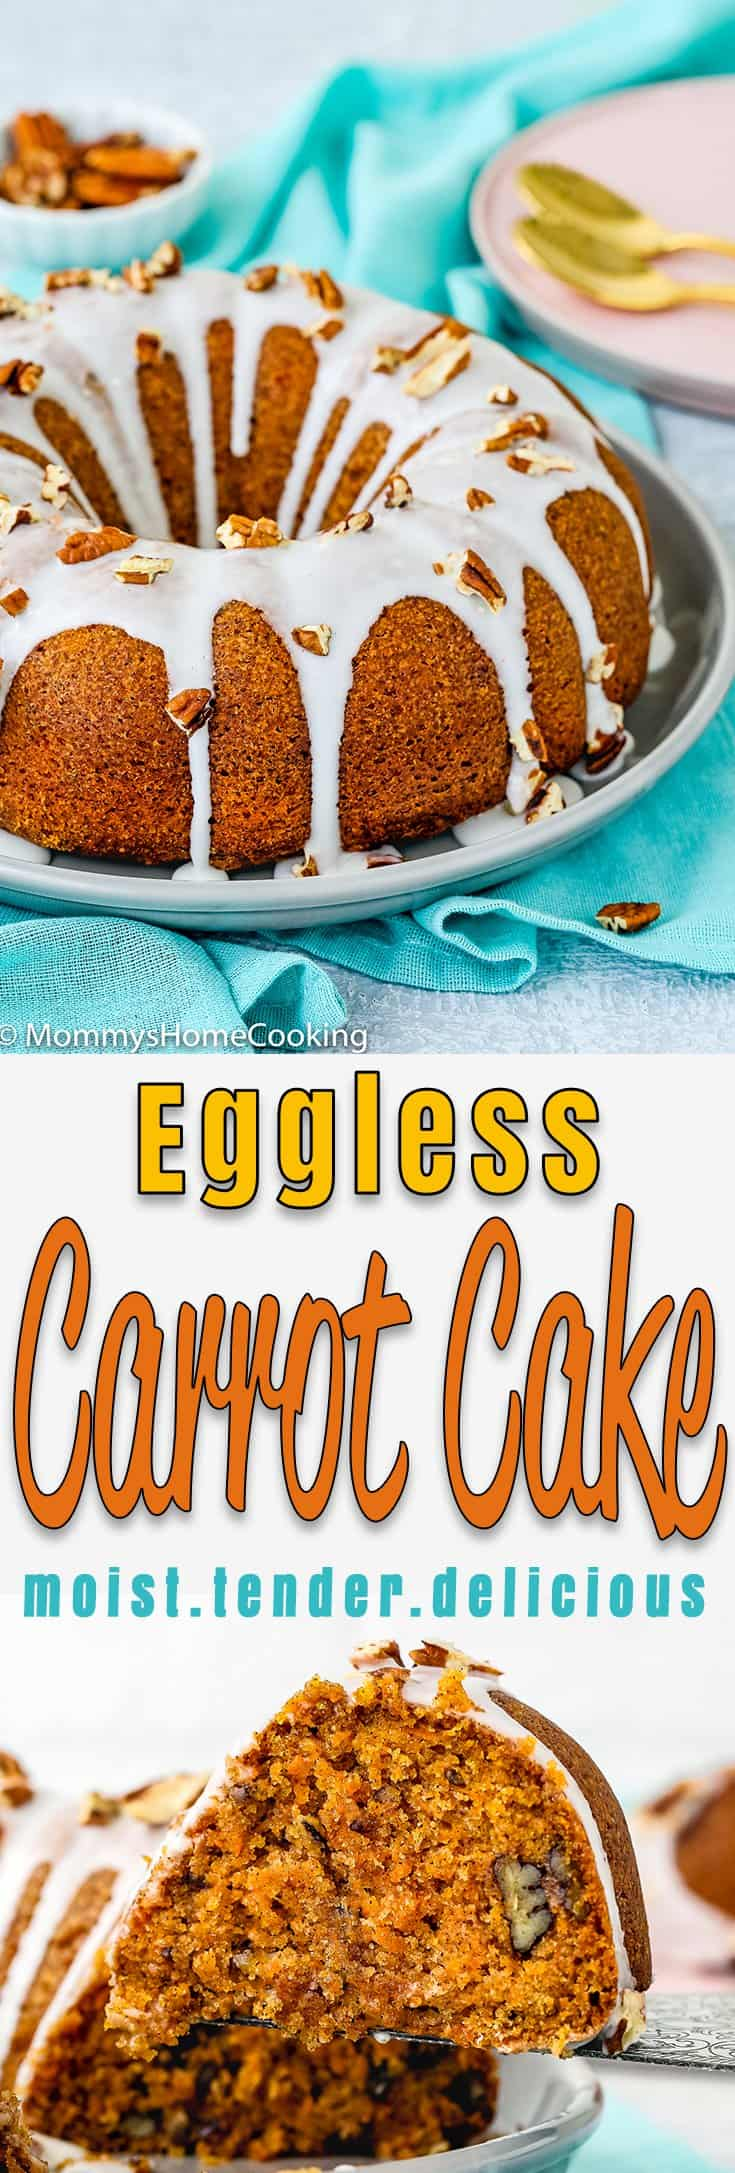 This Eggless Carrot Cake is incredibly moist and tender! It's filled with carrot goodness and has a delicious cinnamon-y taste, and as if that were not enough, it is topped with luscious cream cheese glaze! It comes together easily and is wonderful for breakfast, afternoon snack, or dessert. https://mommyshomecooking.com